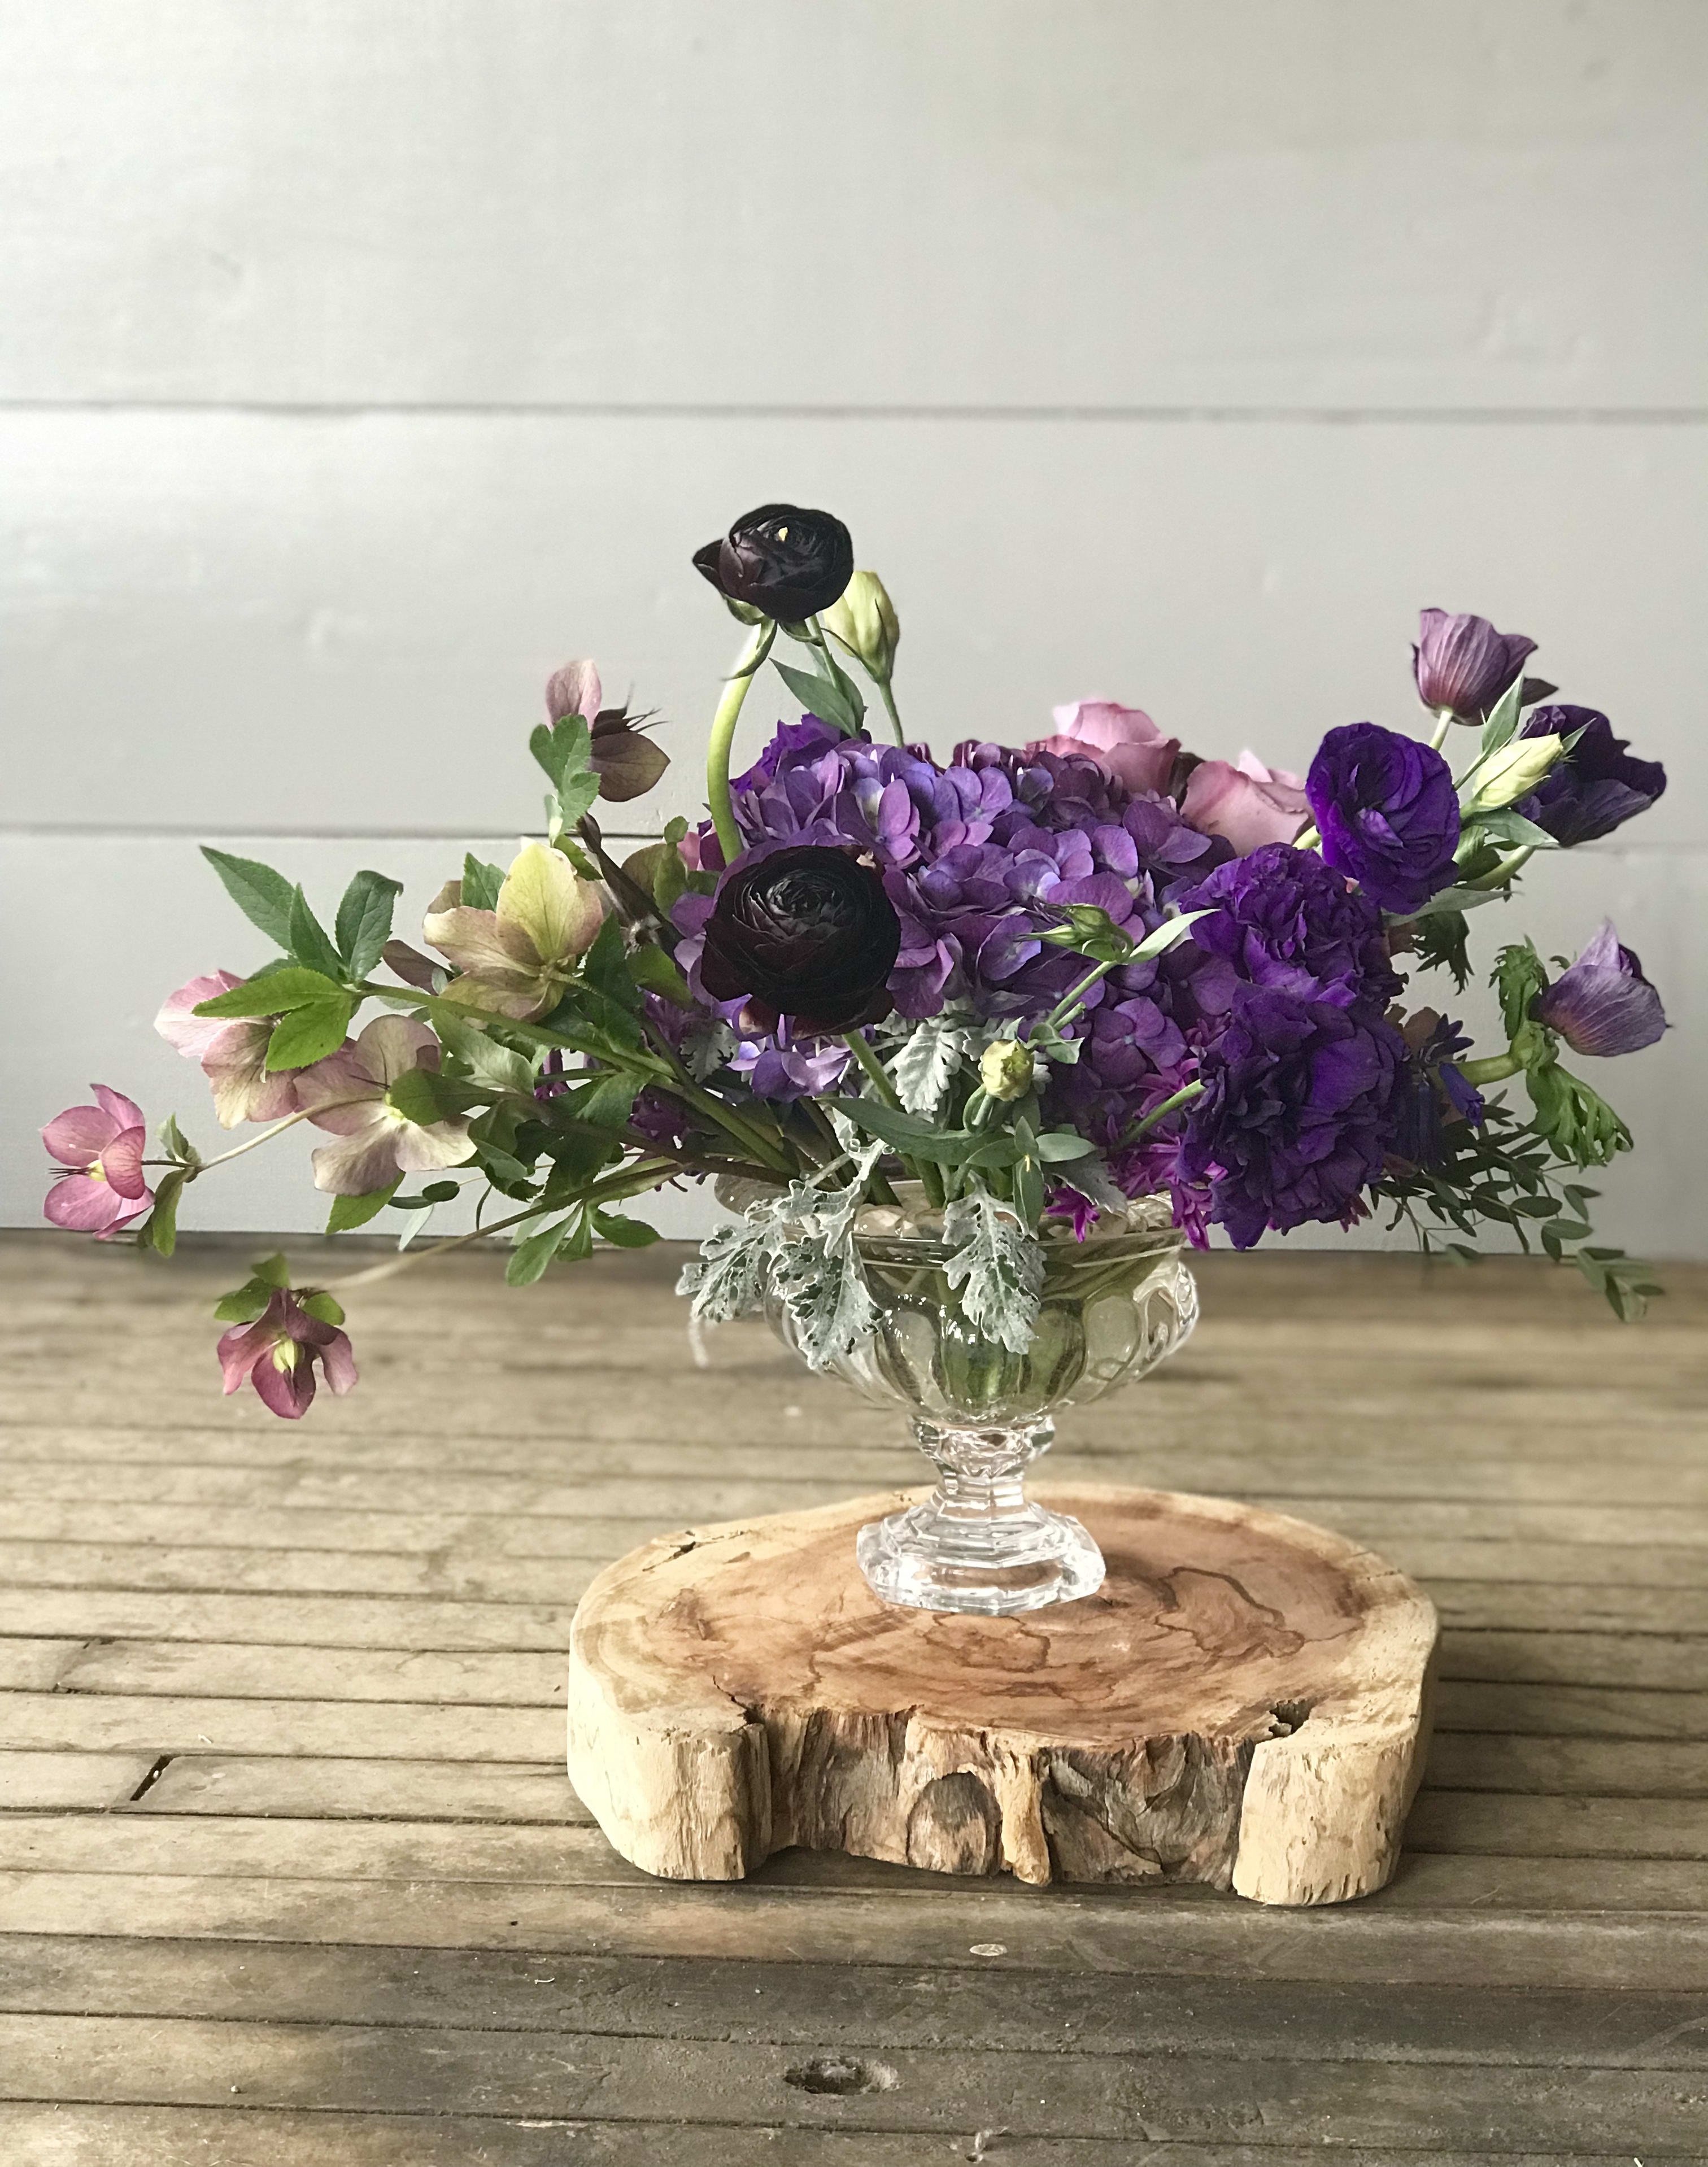 Queen's Garden - A beautiful collection of purples in an elegant glass compote, perfect for any queen of the household.